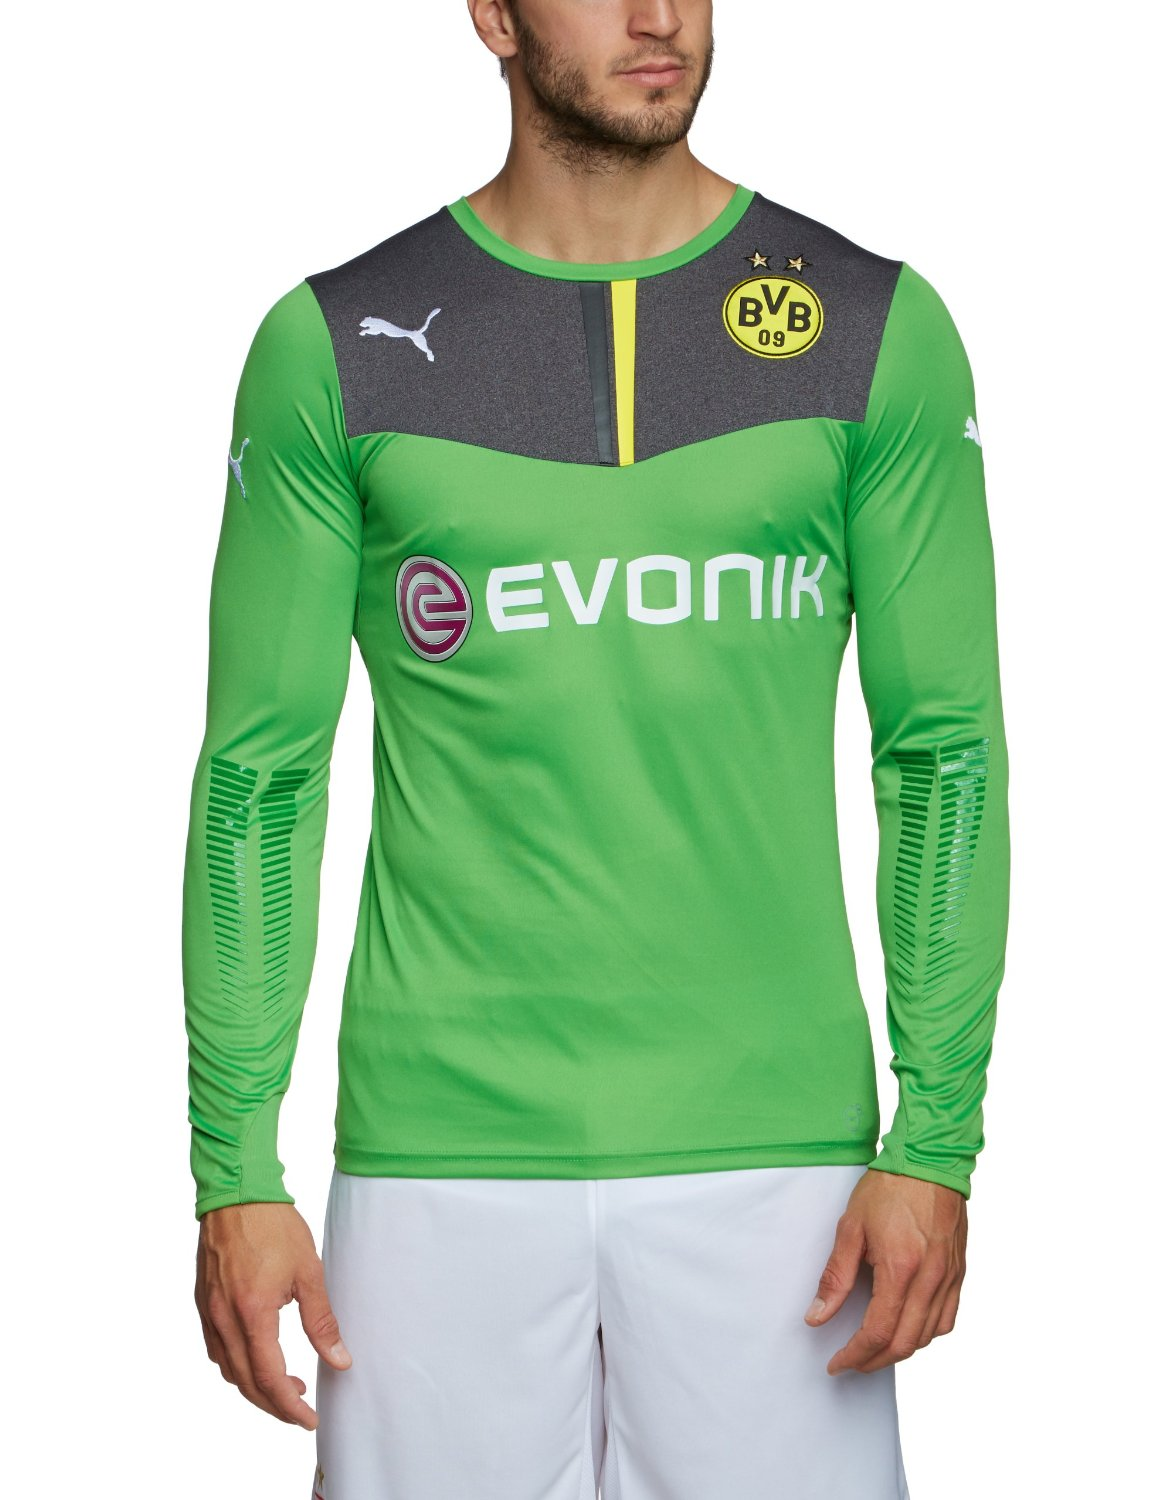 finest selection ca1eb 68180 Buy Borussia Dortmund Home Goalkeeper Jersey 2014 / 2015 in ...